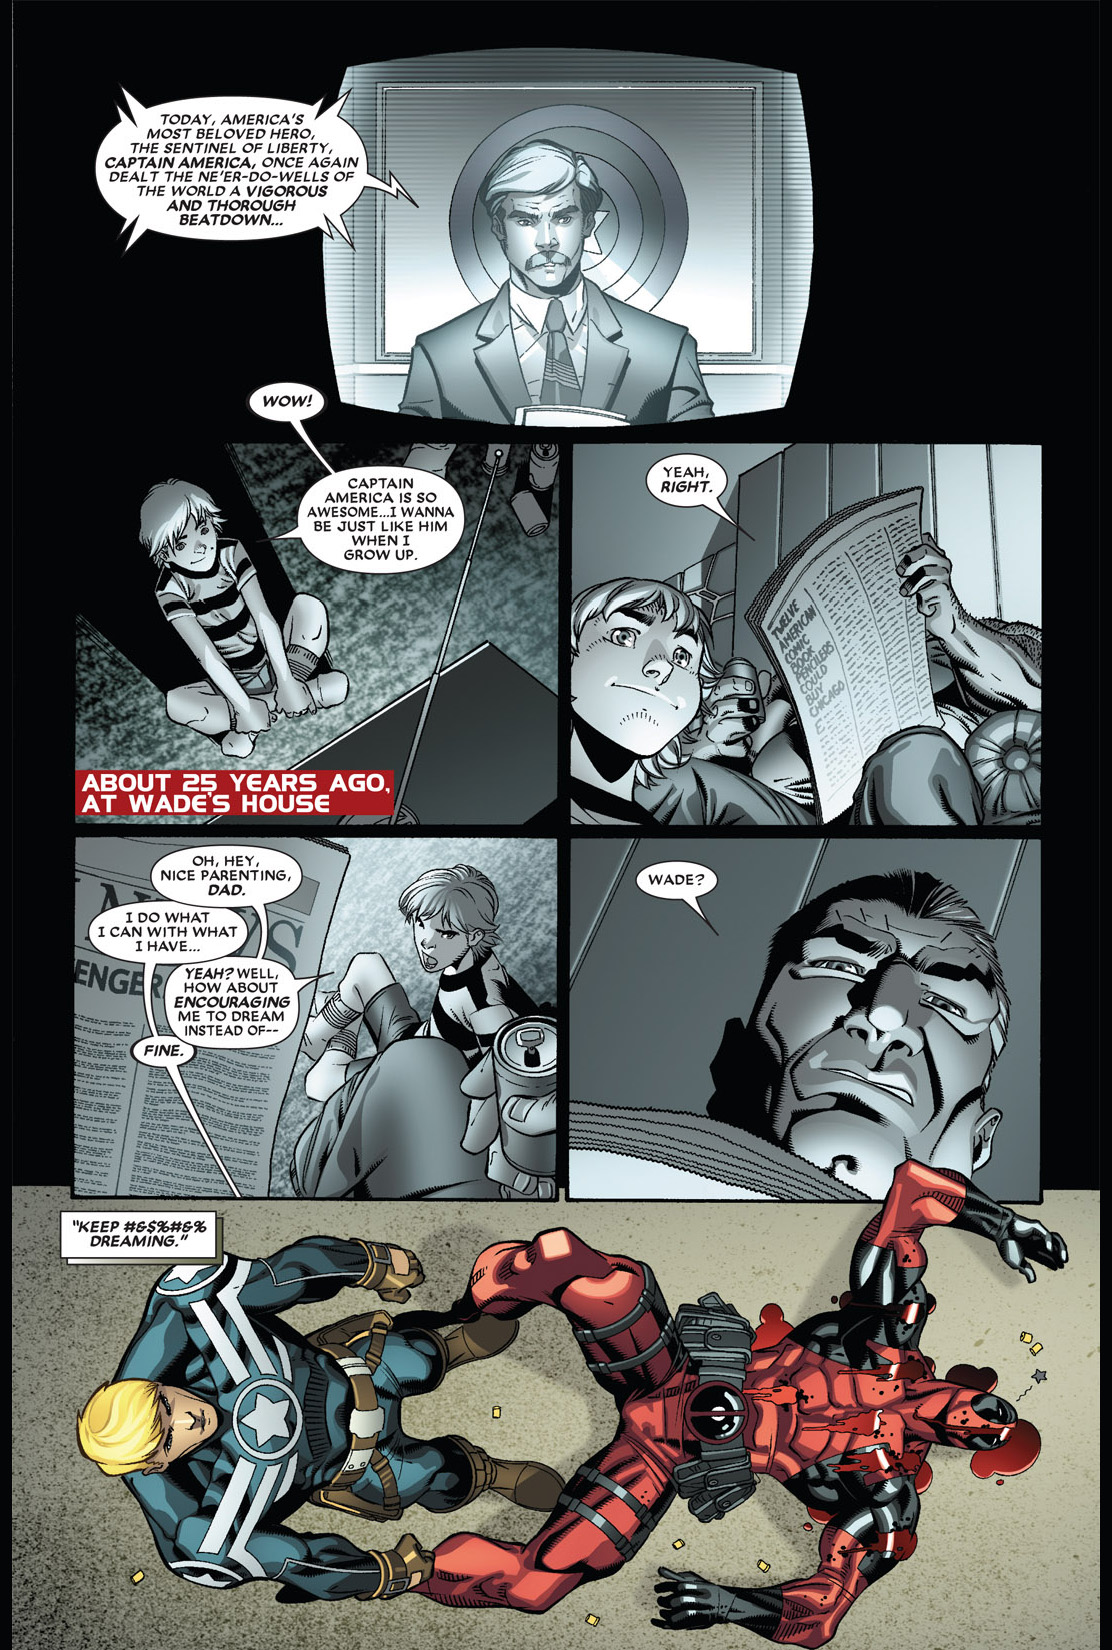 captain america punches deadpool